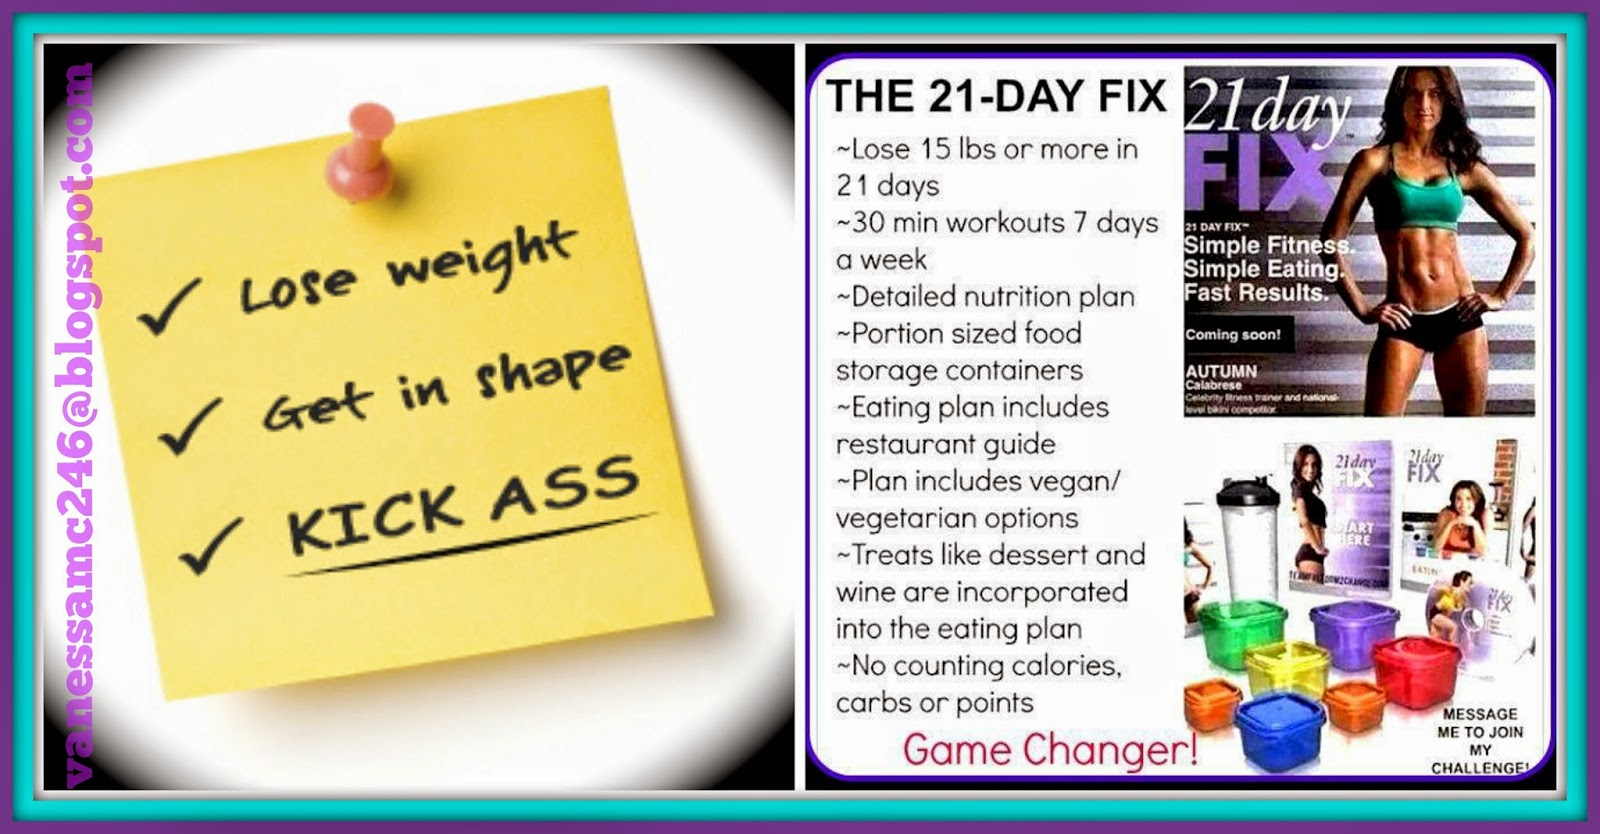 Vanessa McLaughlin, The Butterfly Effect, 21 Day Fix